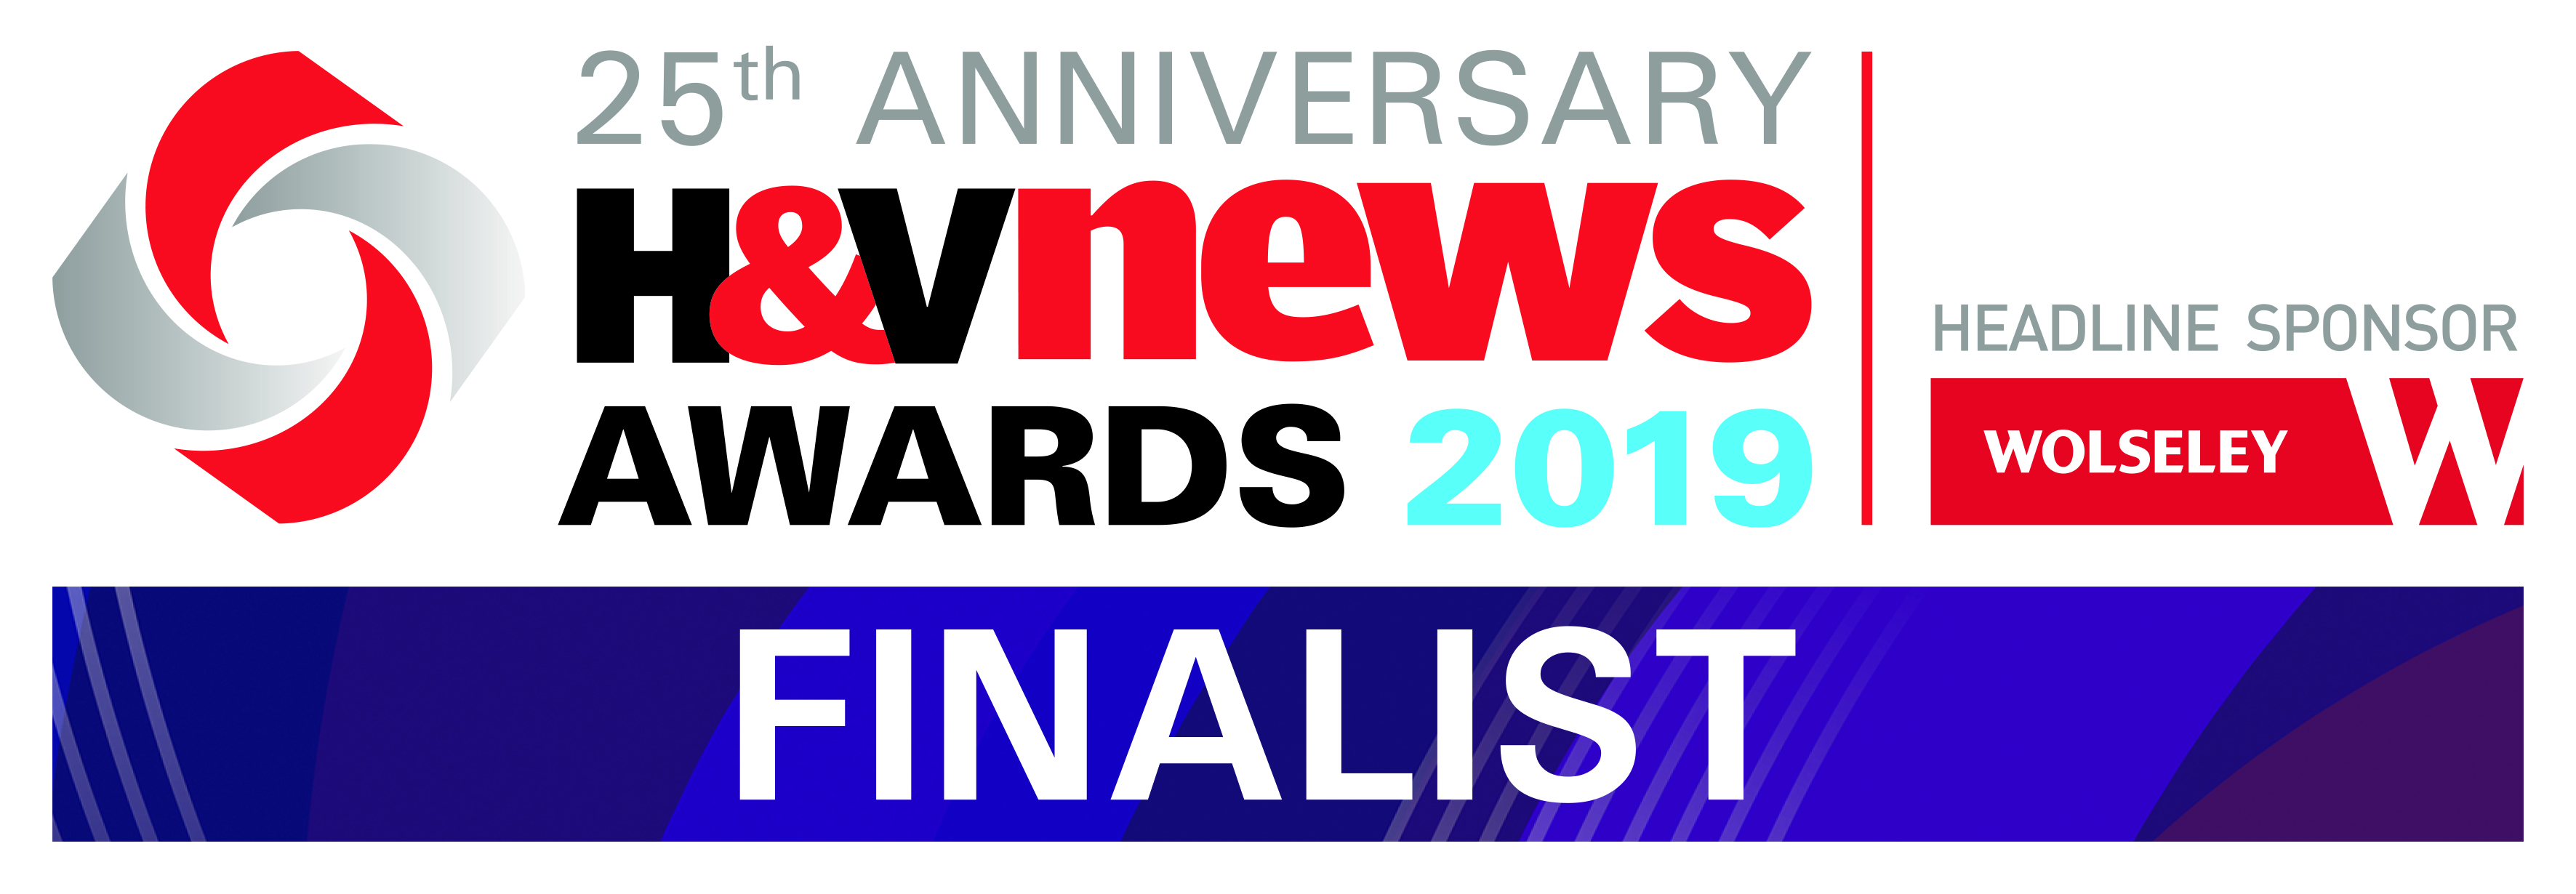 H&V News Awards Finalist logo